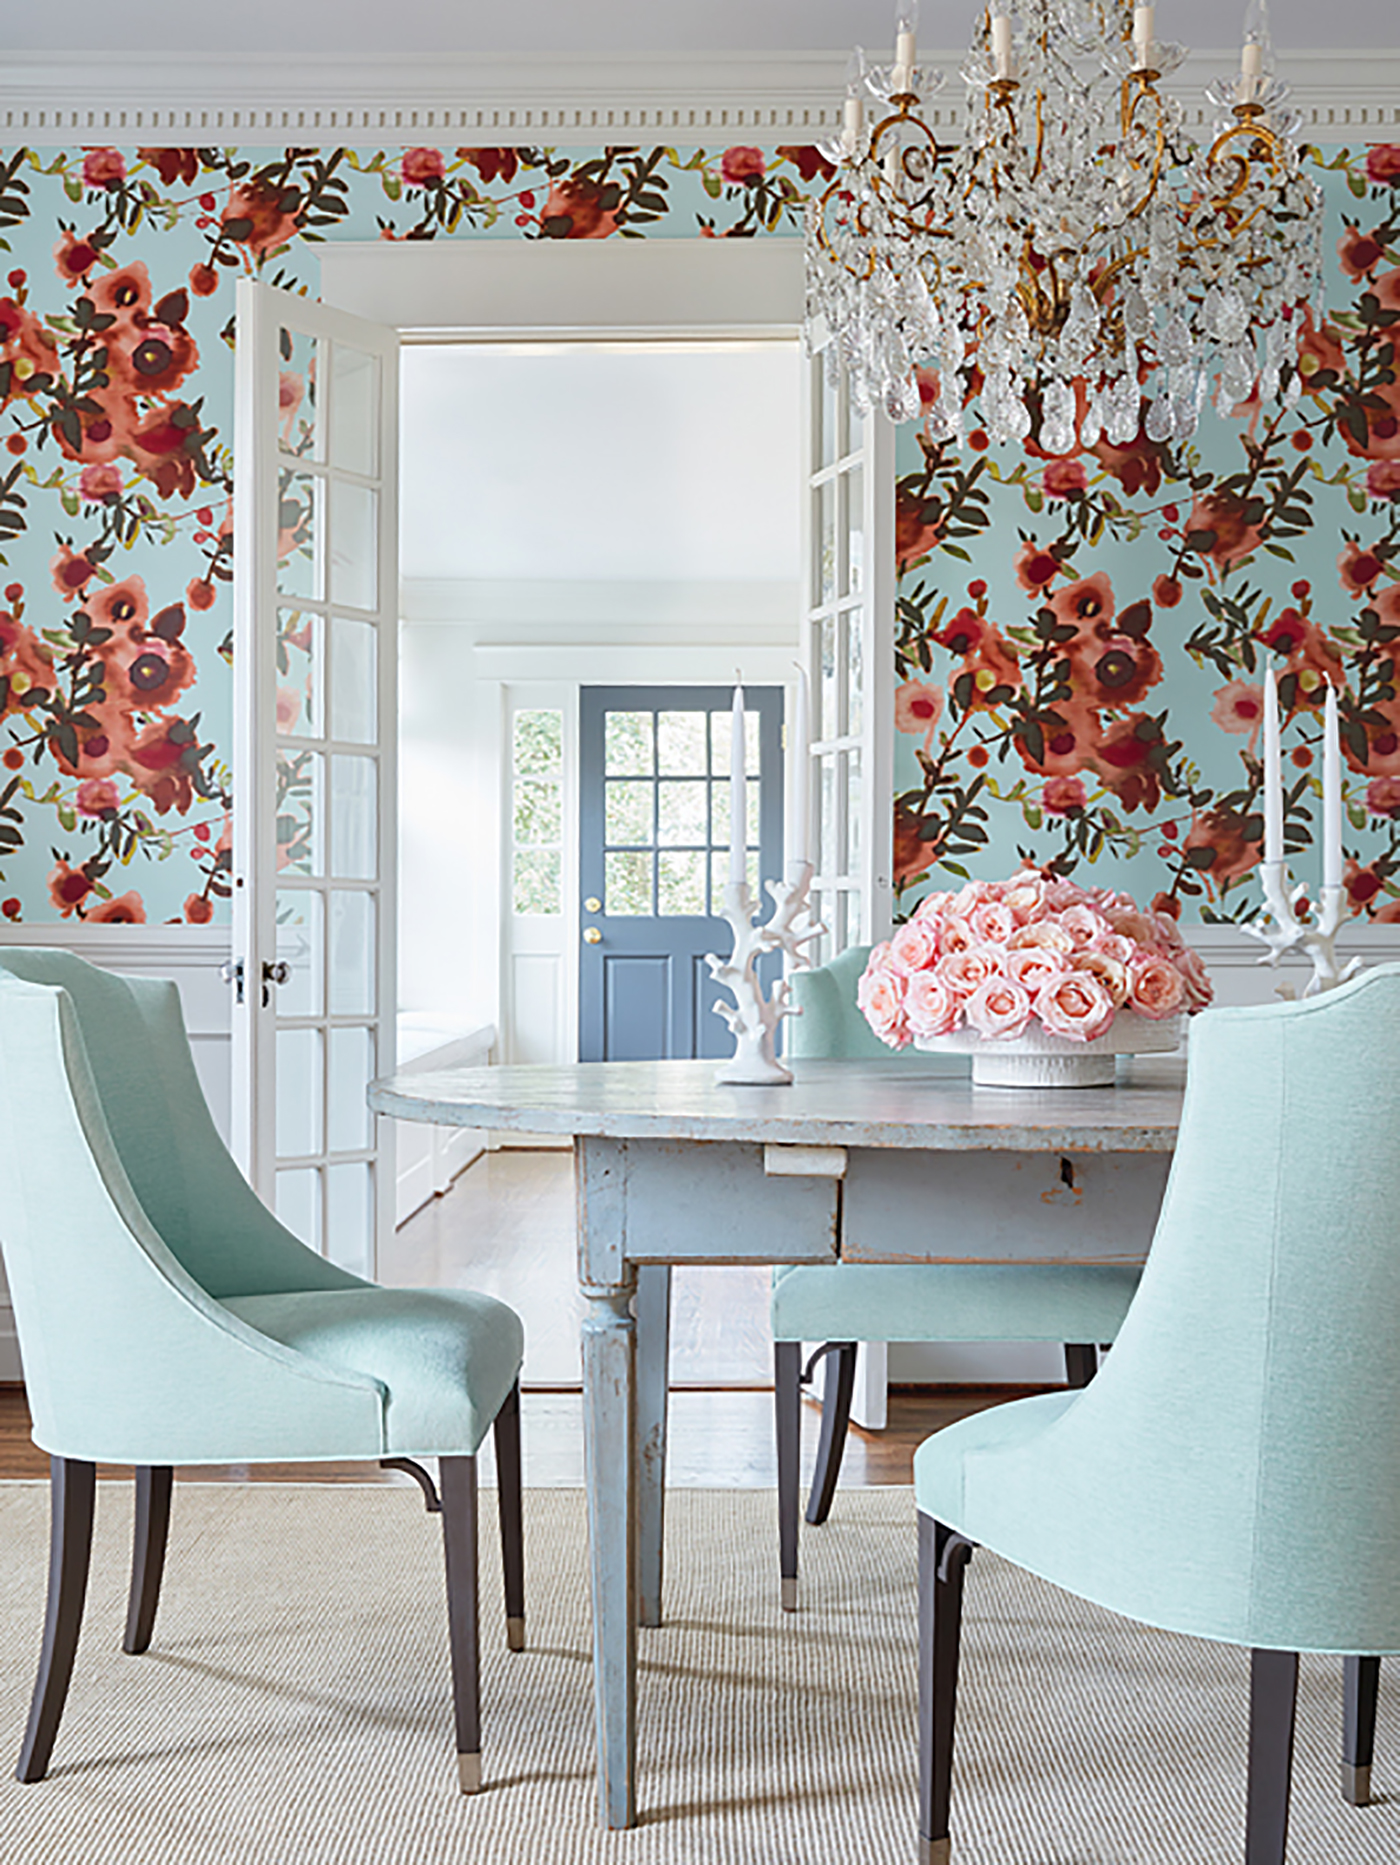 Wallpaper trends and tips from high-end interior designers